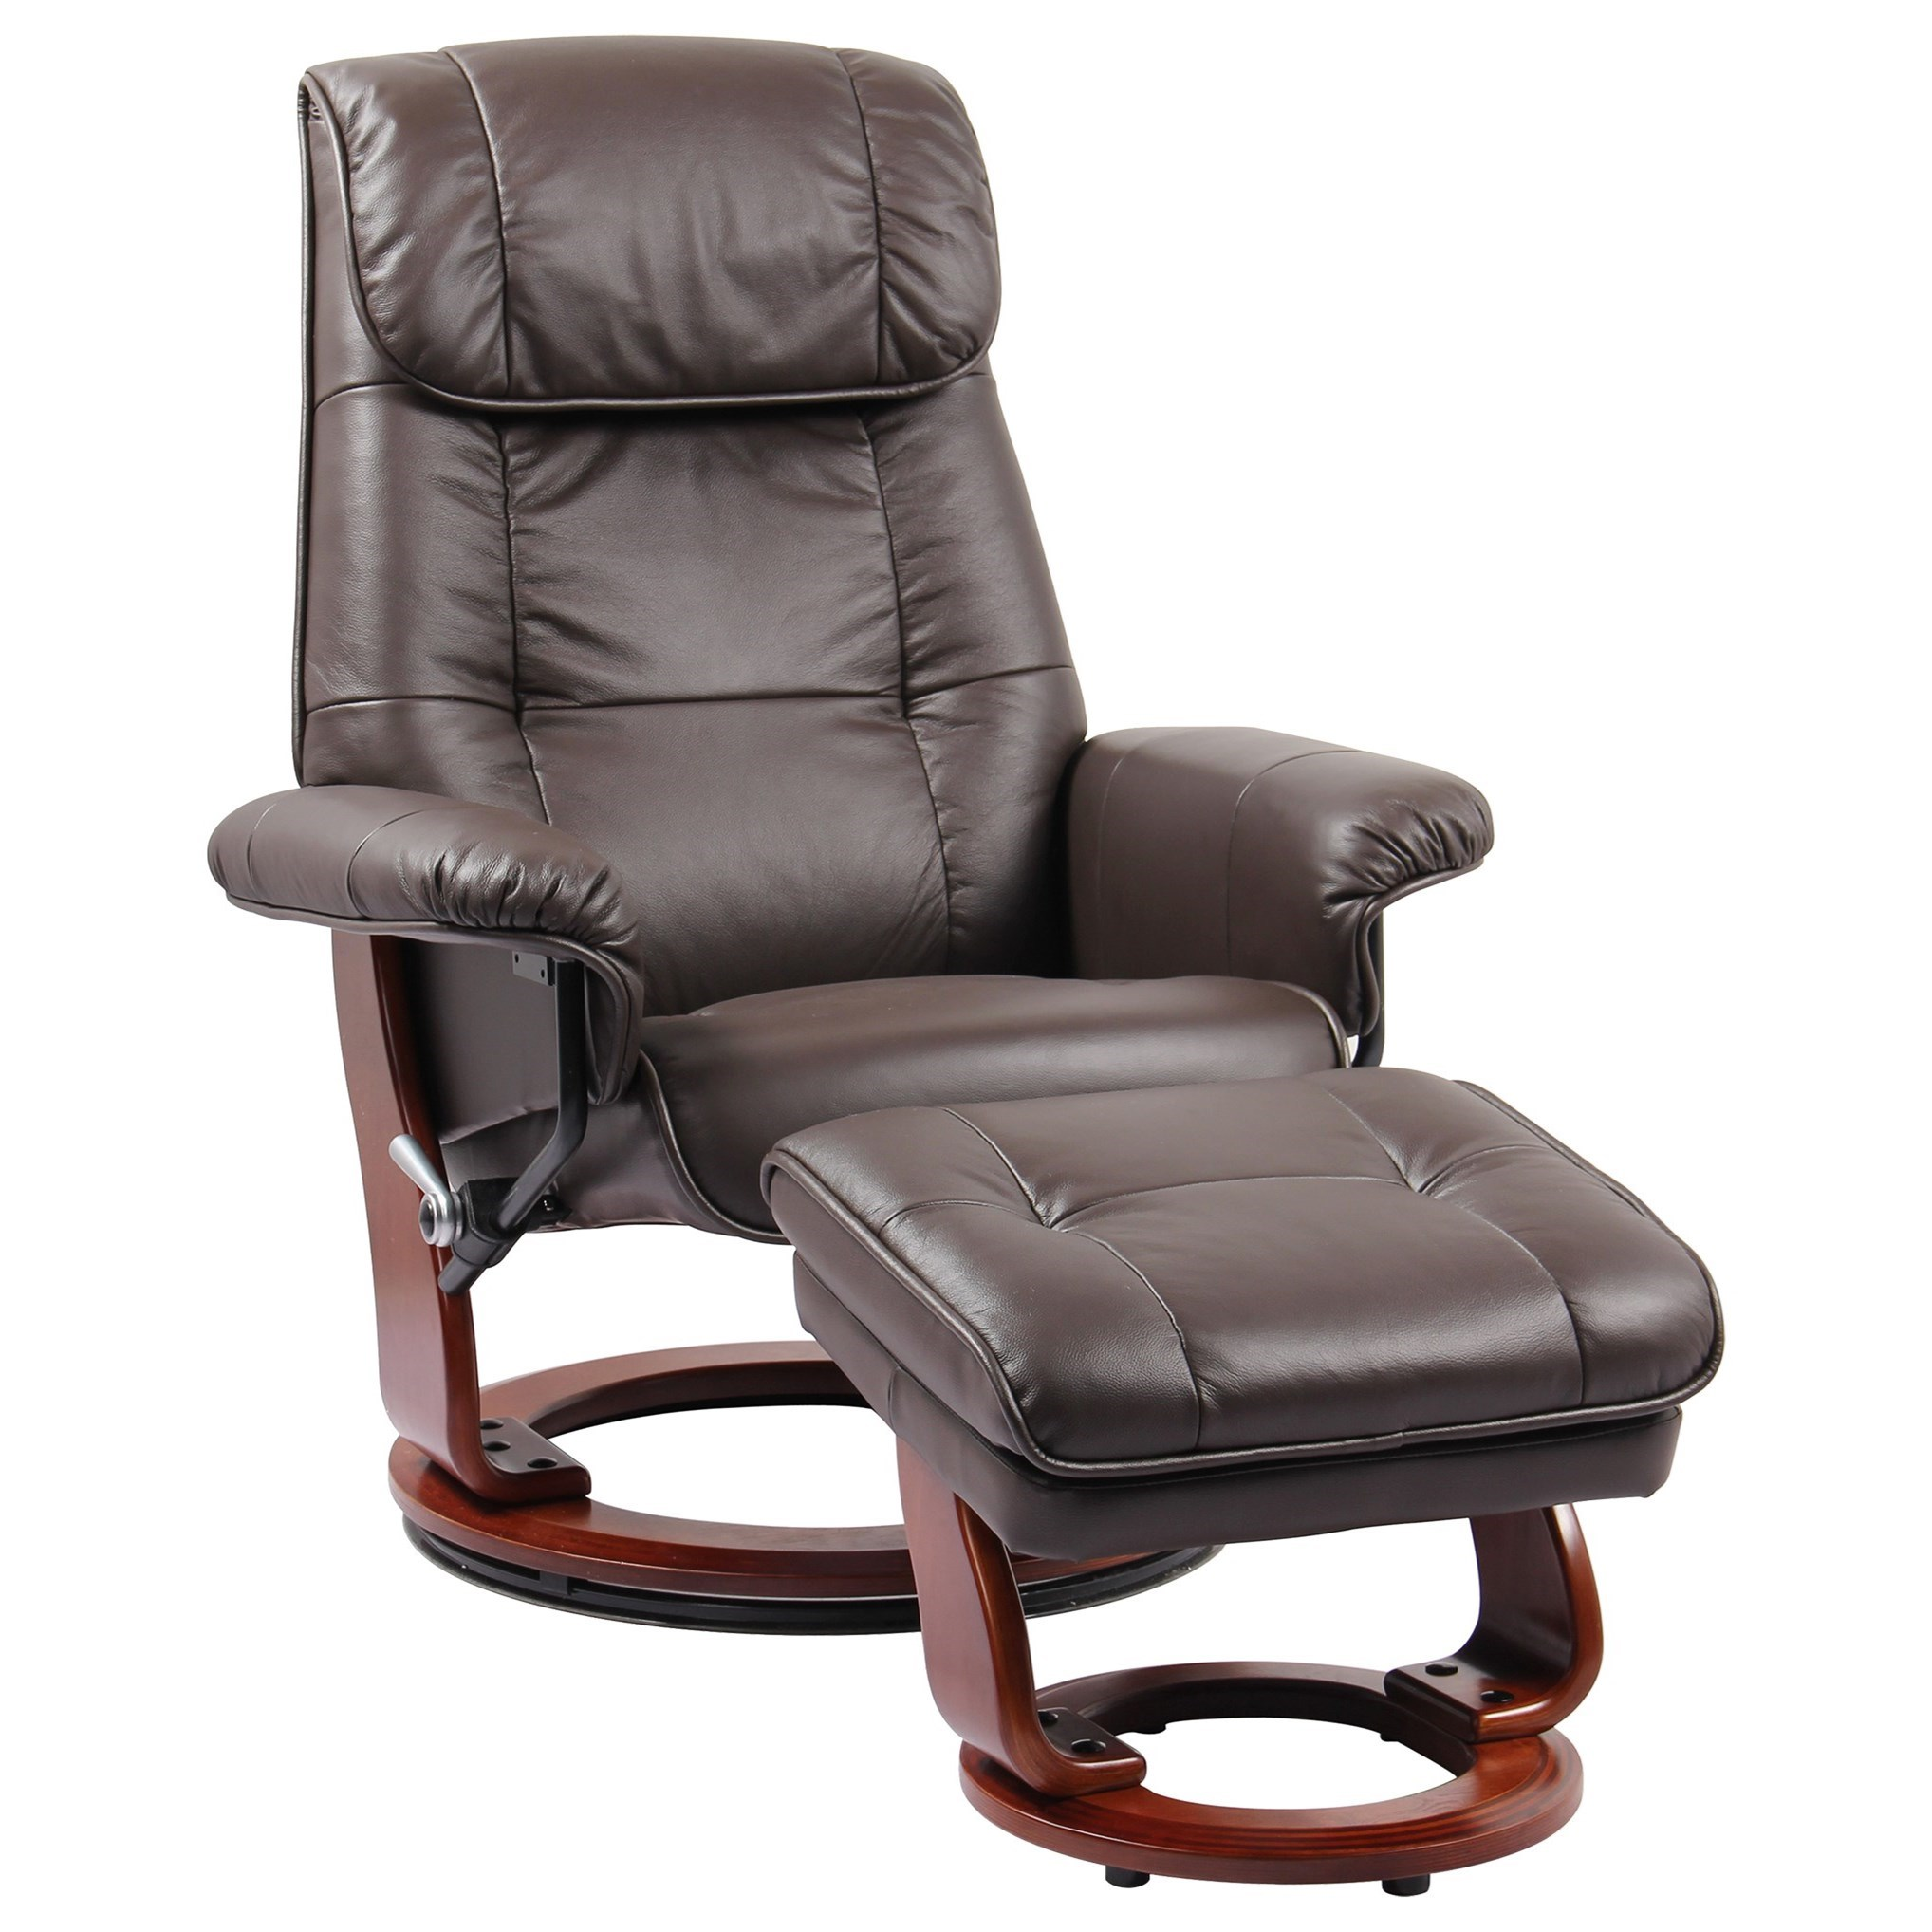 Ventura II Reclining Chair and Ottoman by Benchmaster at Steger's Furniture